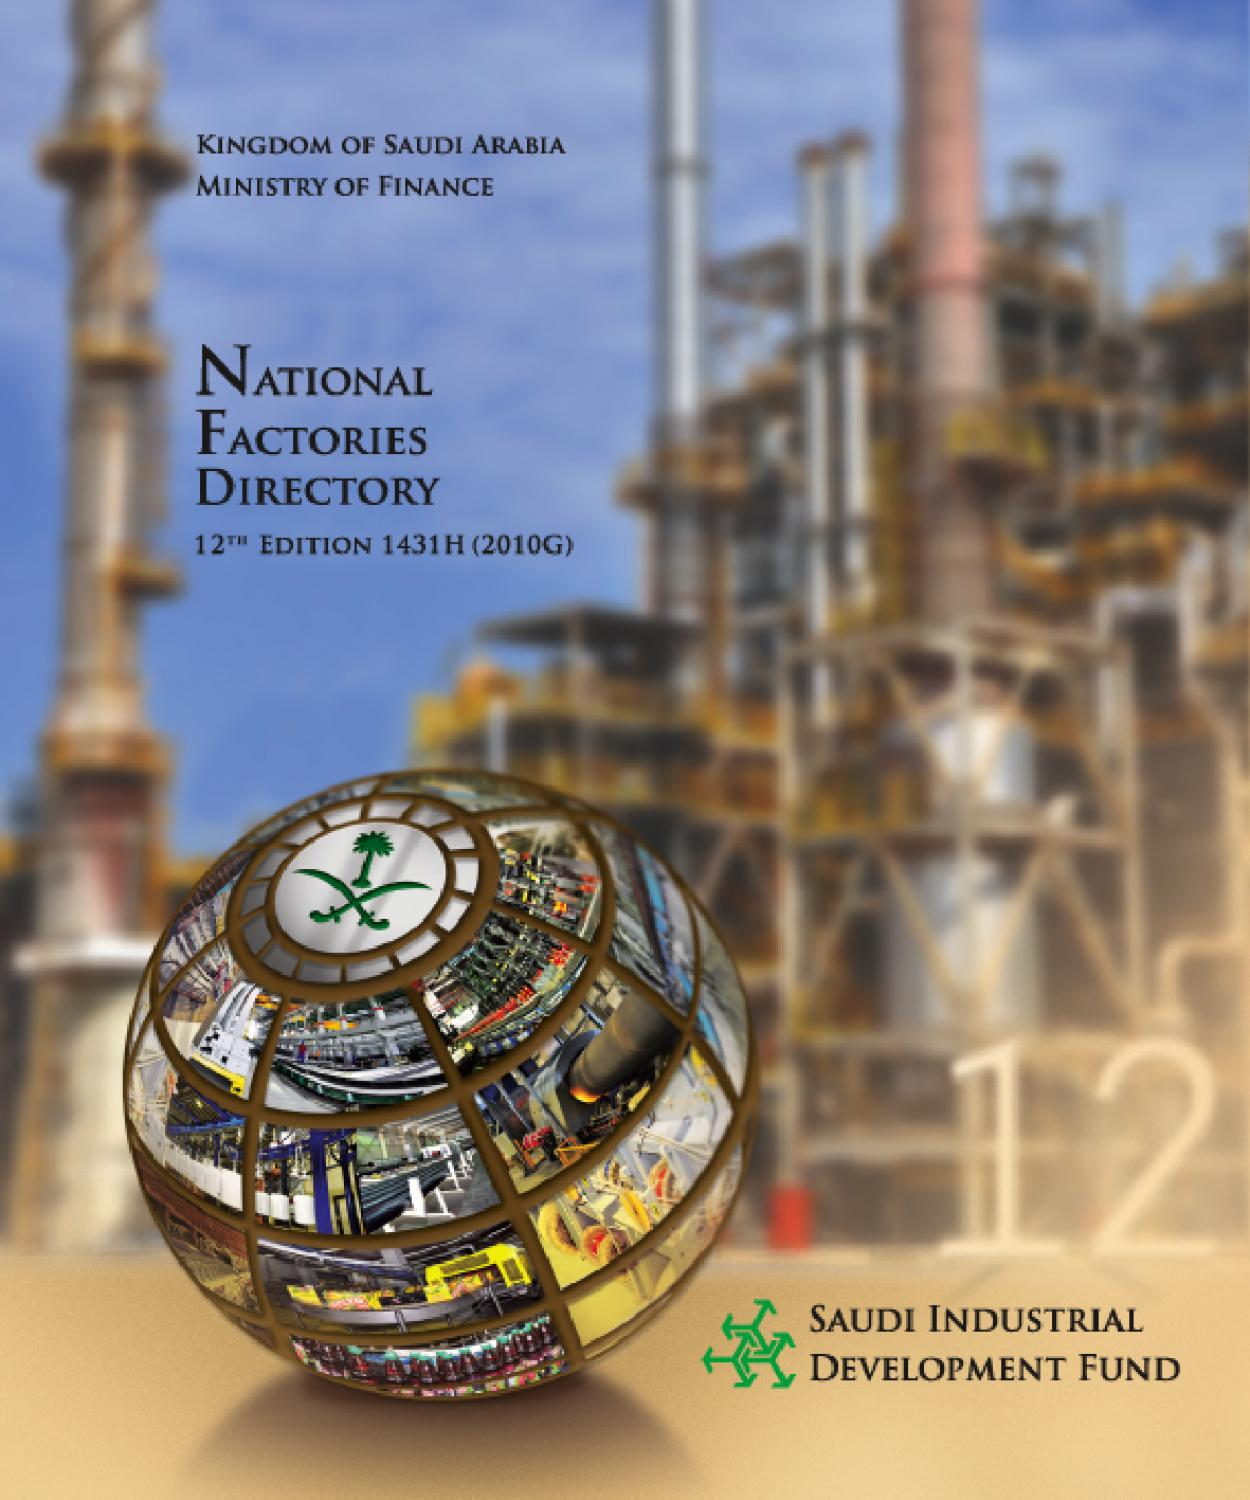 National Factories Directory by Sanji-Paul Arvind - issuu